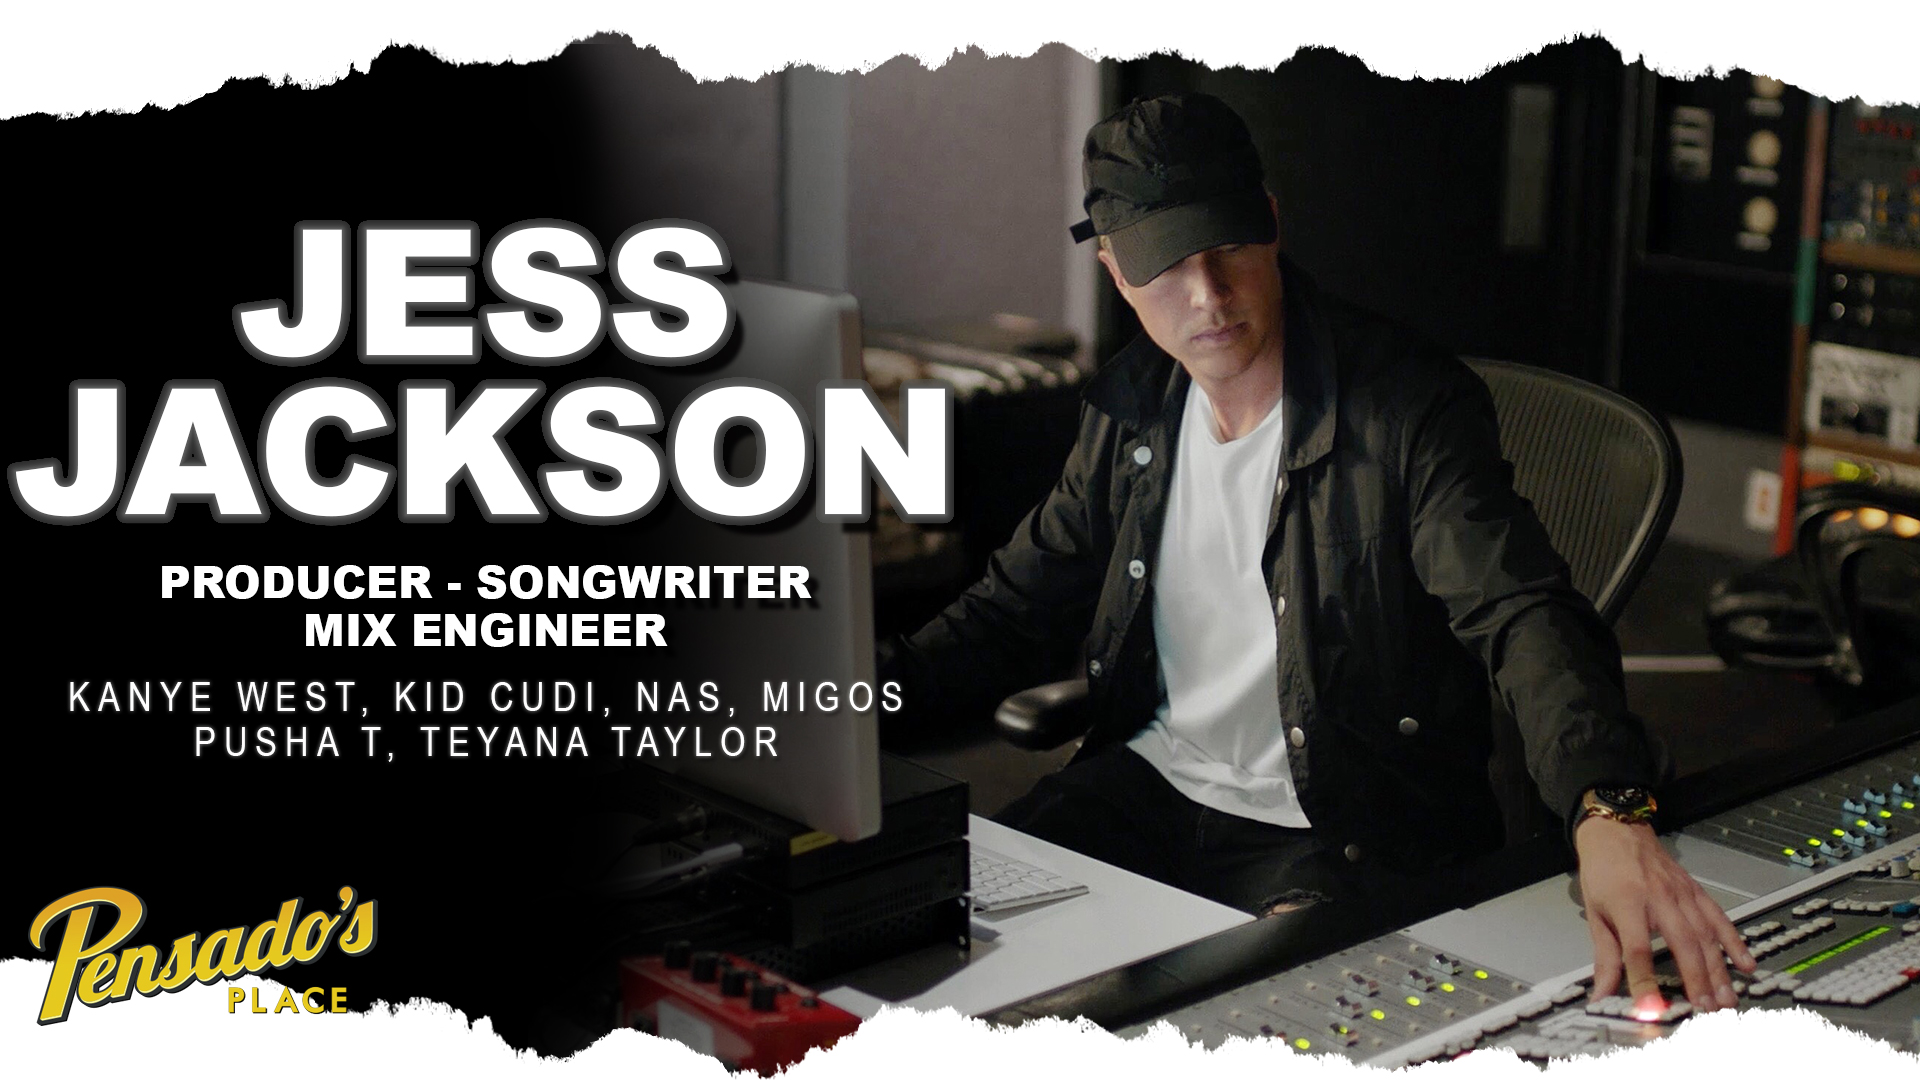 Producer / Songwriter / Engineer, Jess Jackson (Kanye West, Kid Cudi, Pusha T) with Special Appearance by Mike Dean